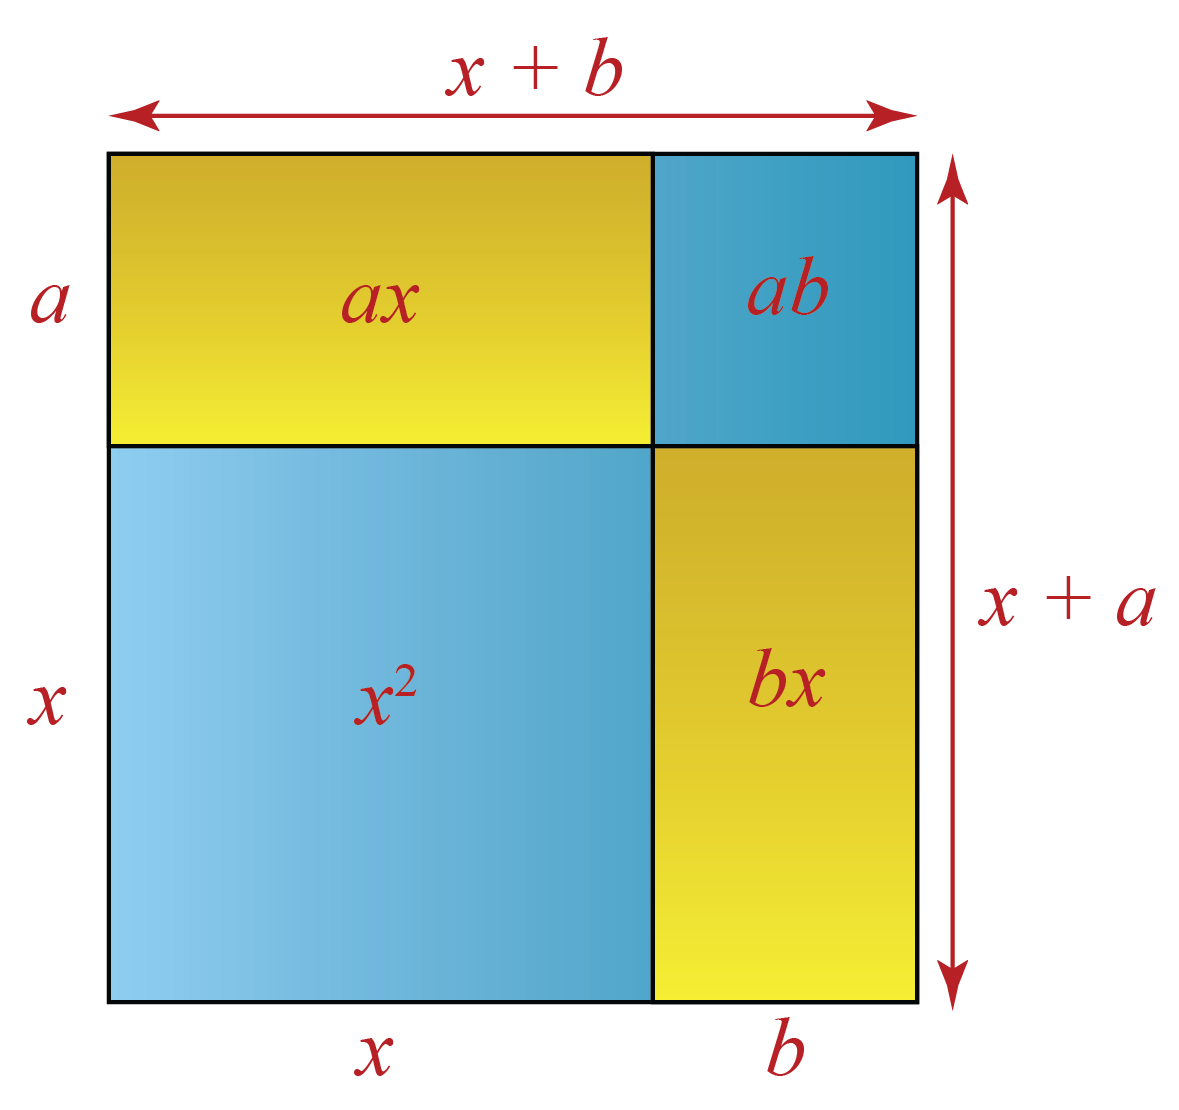 The algebraic identities formula of x+a into x+b is explained using a rectangle.